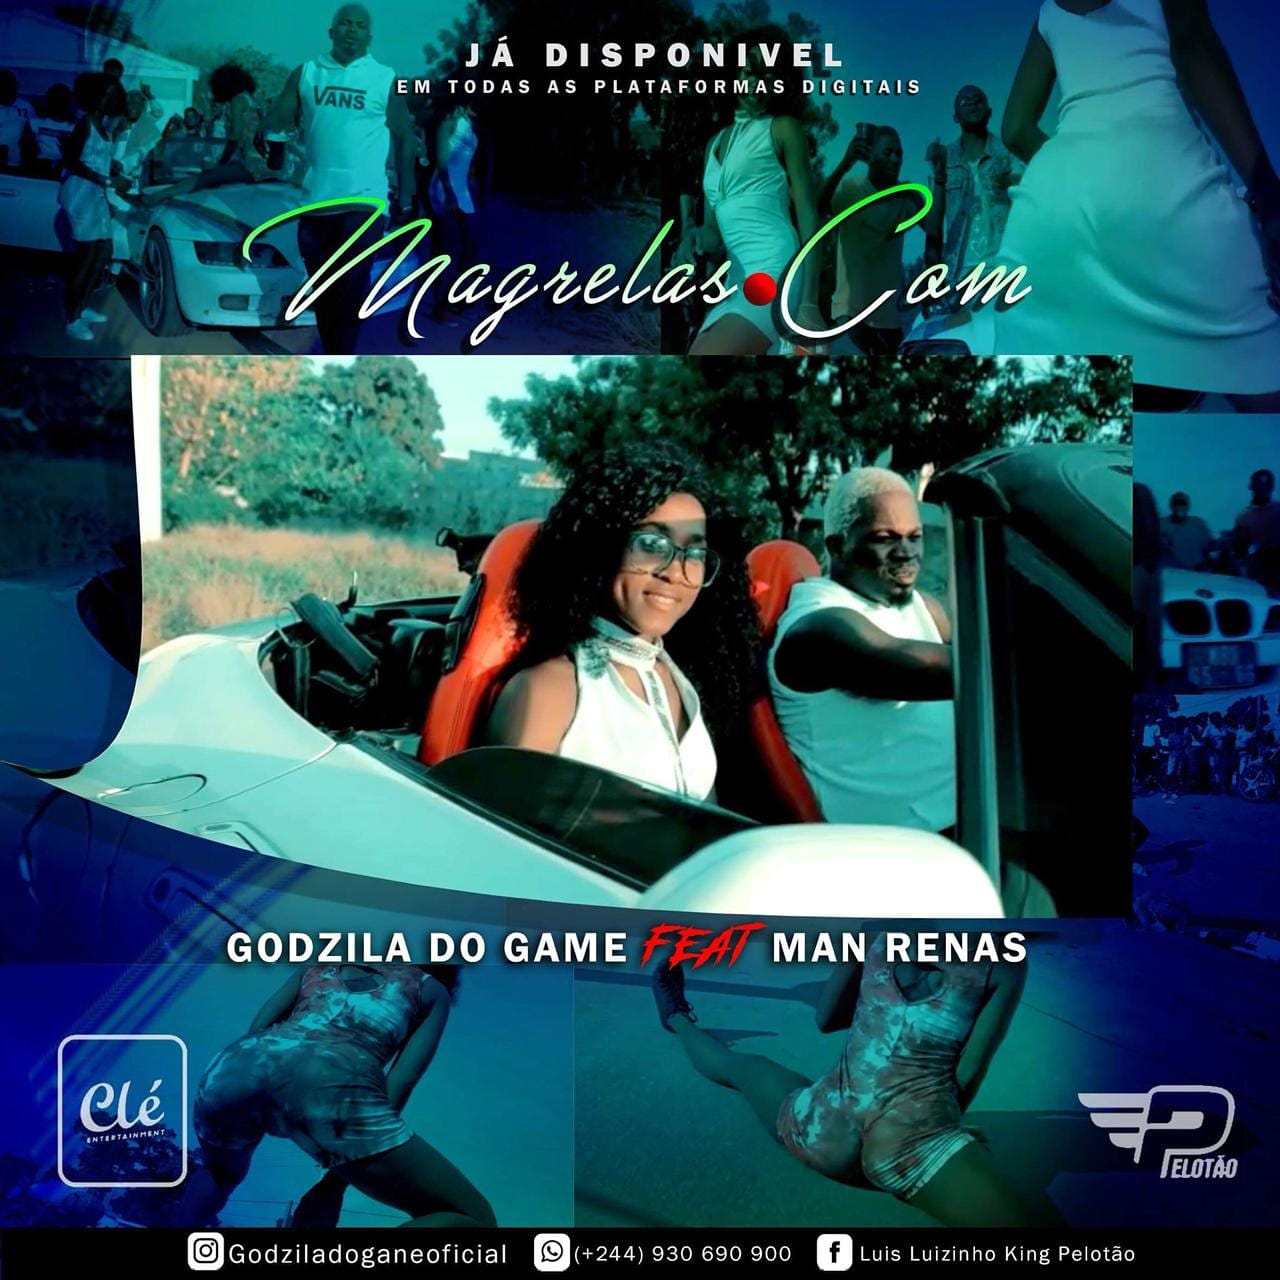 Download Mp3 Song One Man By Singaa: GodZila Do Game Feat. Man Renas